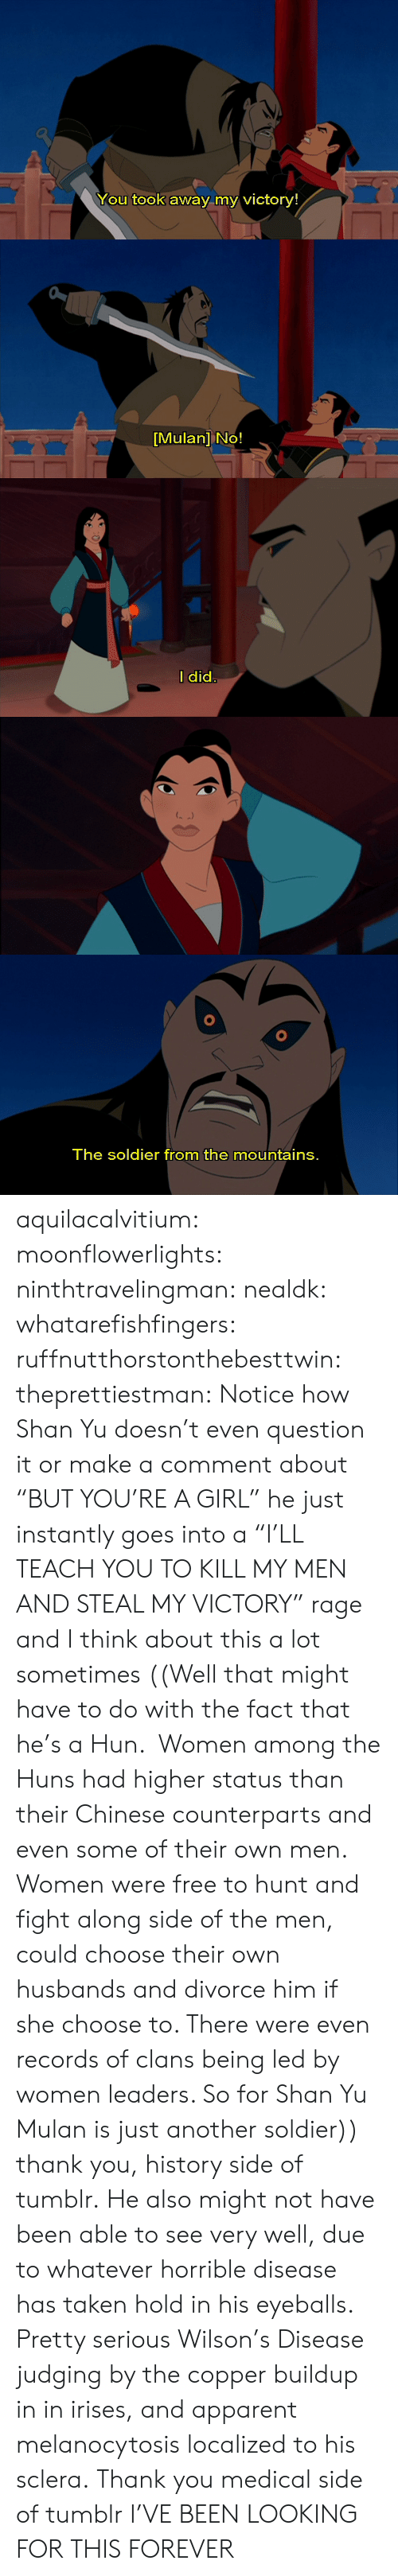 "Mulan, Taken, and Tumblr: You took away my victory!   [Mulan] No!   l did   The soldier from the mountains. aquilacalvitium: moonflowerlights:  ninthtravelingman:  nealdk:  whatarefishfingers:  ruffnutthorstonthebesttwin:  theprettiestman:  Notice how Shan Yu doesn't even question it or make a comment about ""BUT YOU'RE A GIRL"" he just instantly goes into a ""I'LL TEACH YOU TO KILL MY MEN AND STEAL MY VICTORY"" rage and I think about this a lot sometimes  ((Well that might have to do with the fact that he's a Hun.  Women among the Huns had higher status than their Chinese counterparts and even some of their own men. Women were free to hunt and fight along side of the men, could choose their own husbands and divorce him if she choose to. There were even records of clans being led by women leaders. So for Shan Yu Mulan is just another soldier))  thank you, history side of tumblr.  He also might not have been able to see very well, due to whatever horrible disease has taken hold in his eyeballs.  Pretty serious Wilson's Disease judging by the copper buildup in in irises, and apparent melanocytosis localized to his sclera.  Thank you medical side of tumblr   I'VE BEEN LOOKING FOR THIS FOREVER"